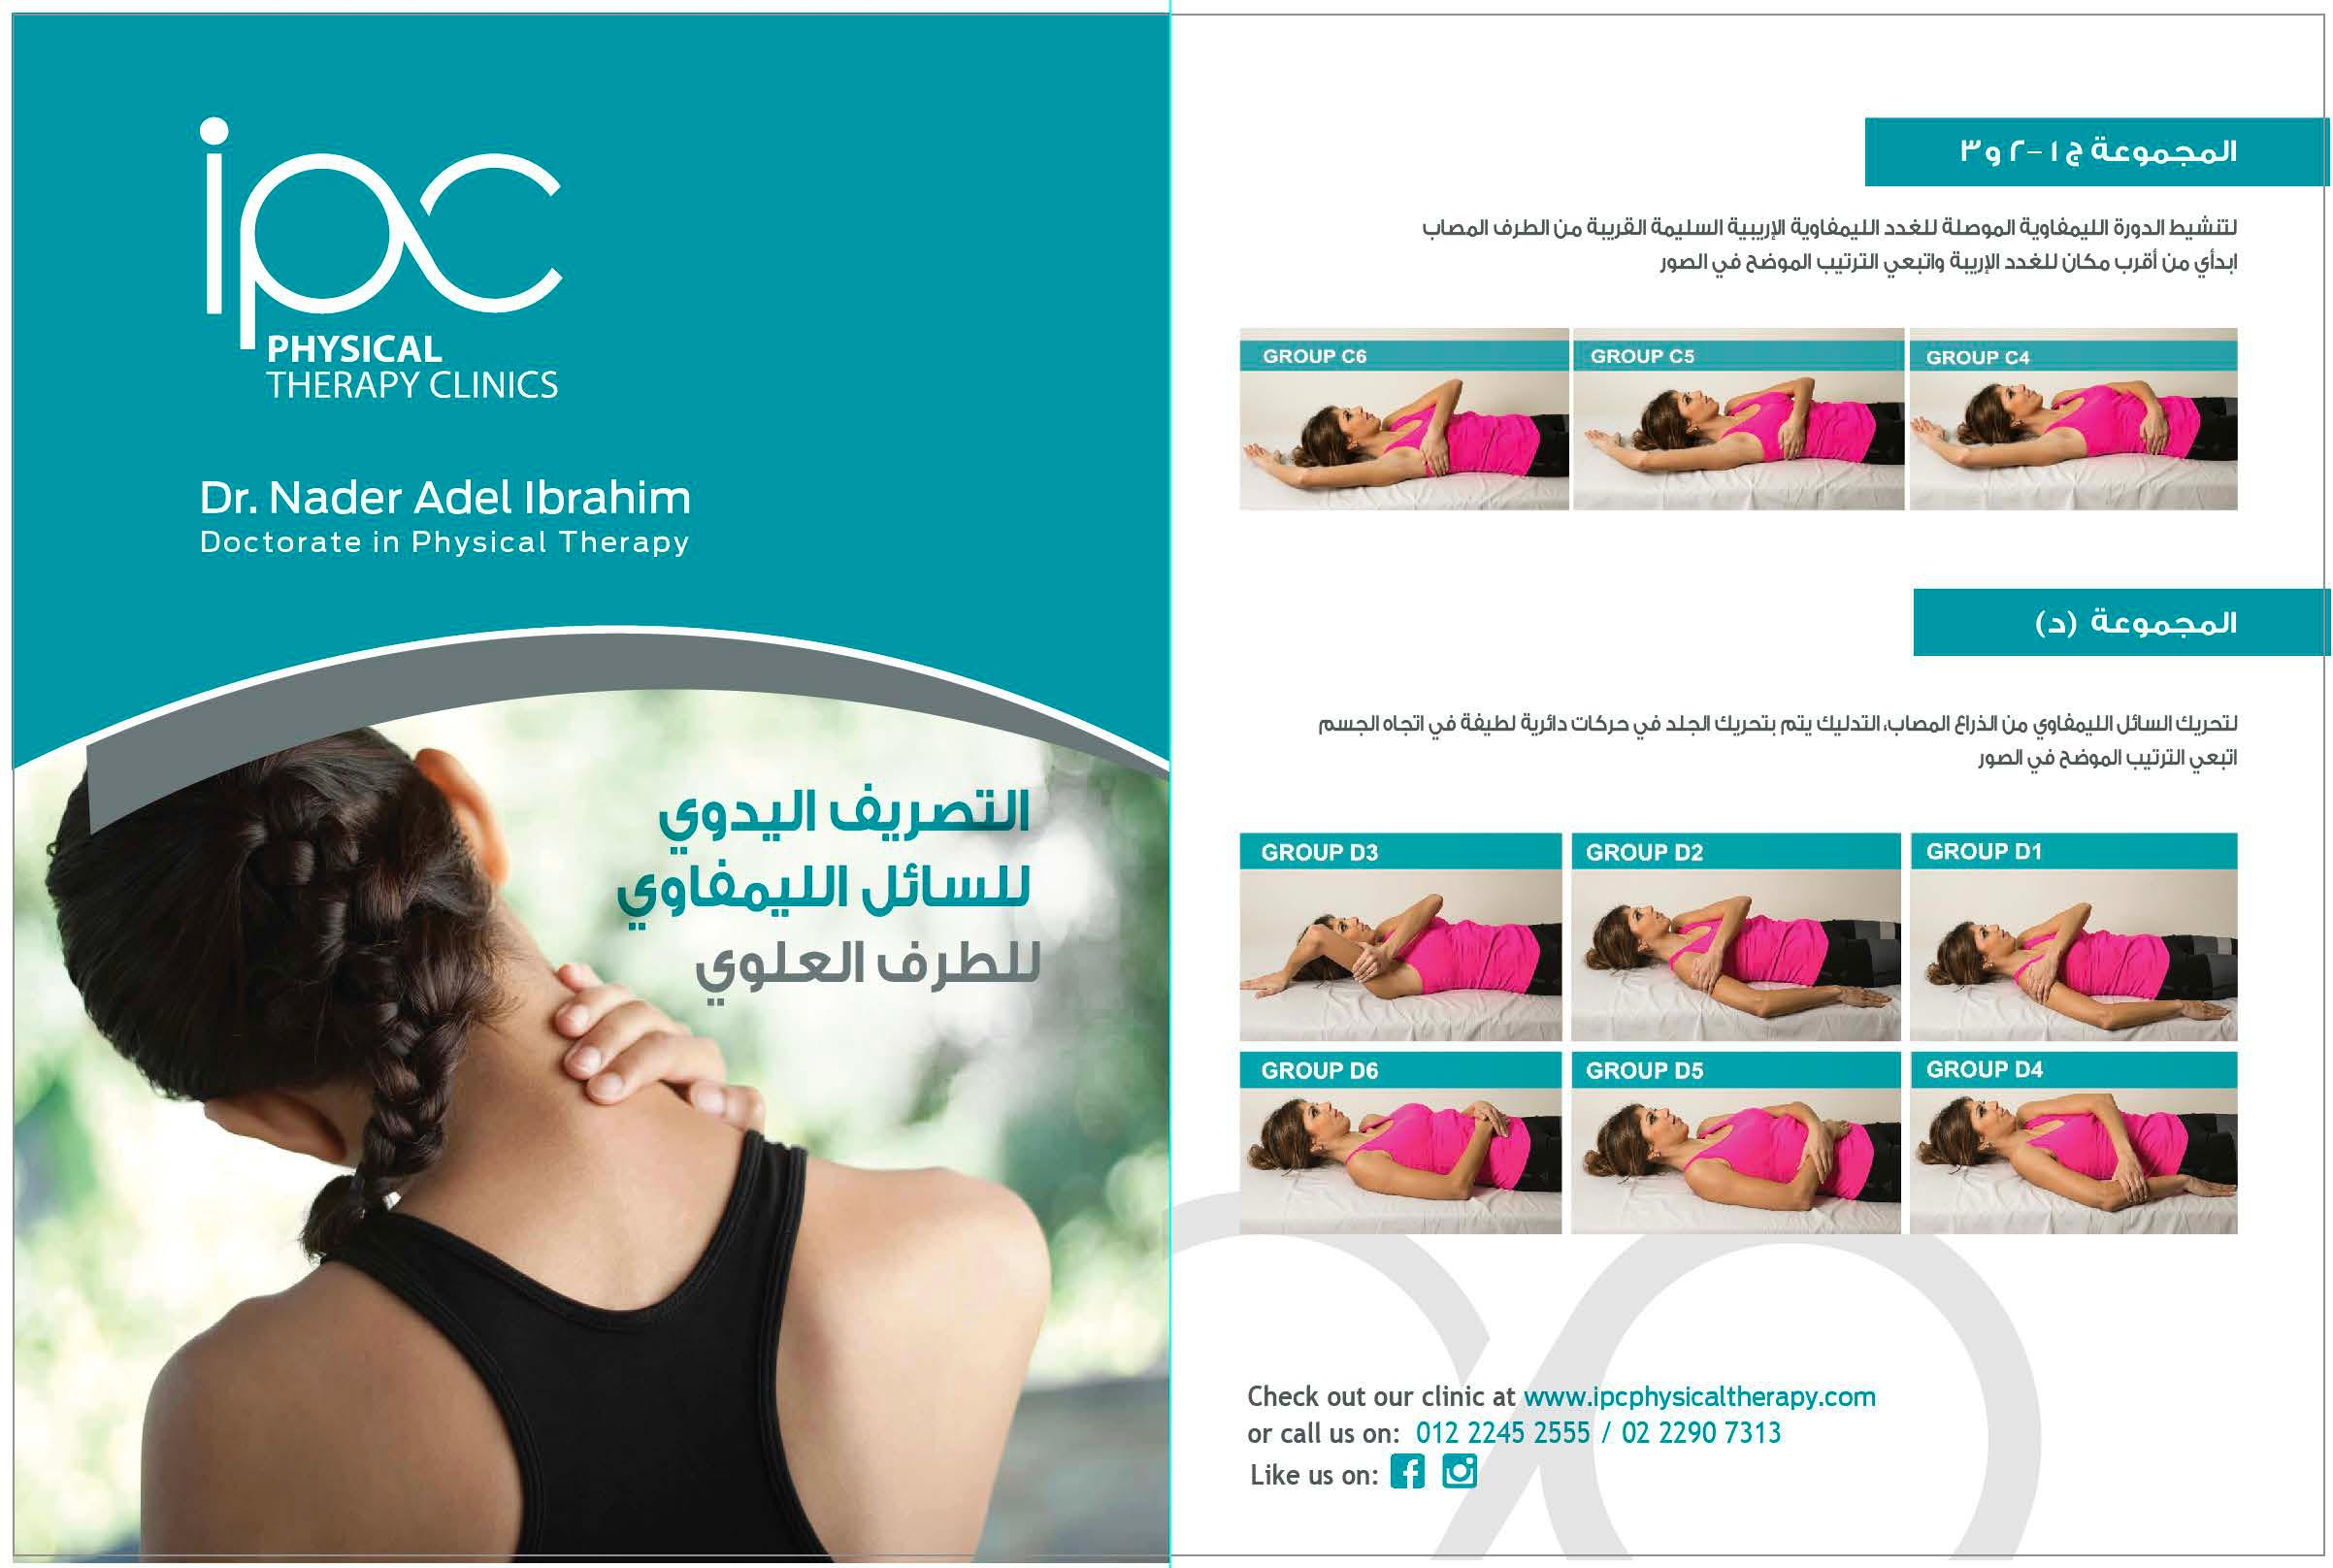 Arabic upper body lymphedema exercises